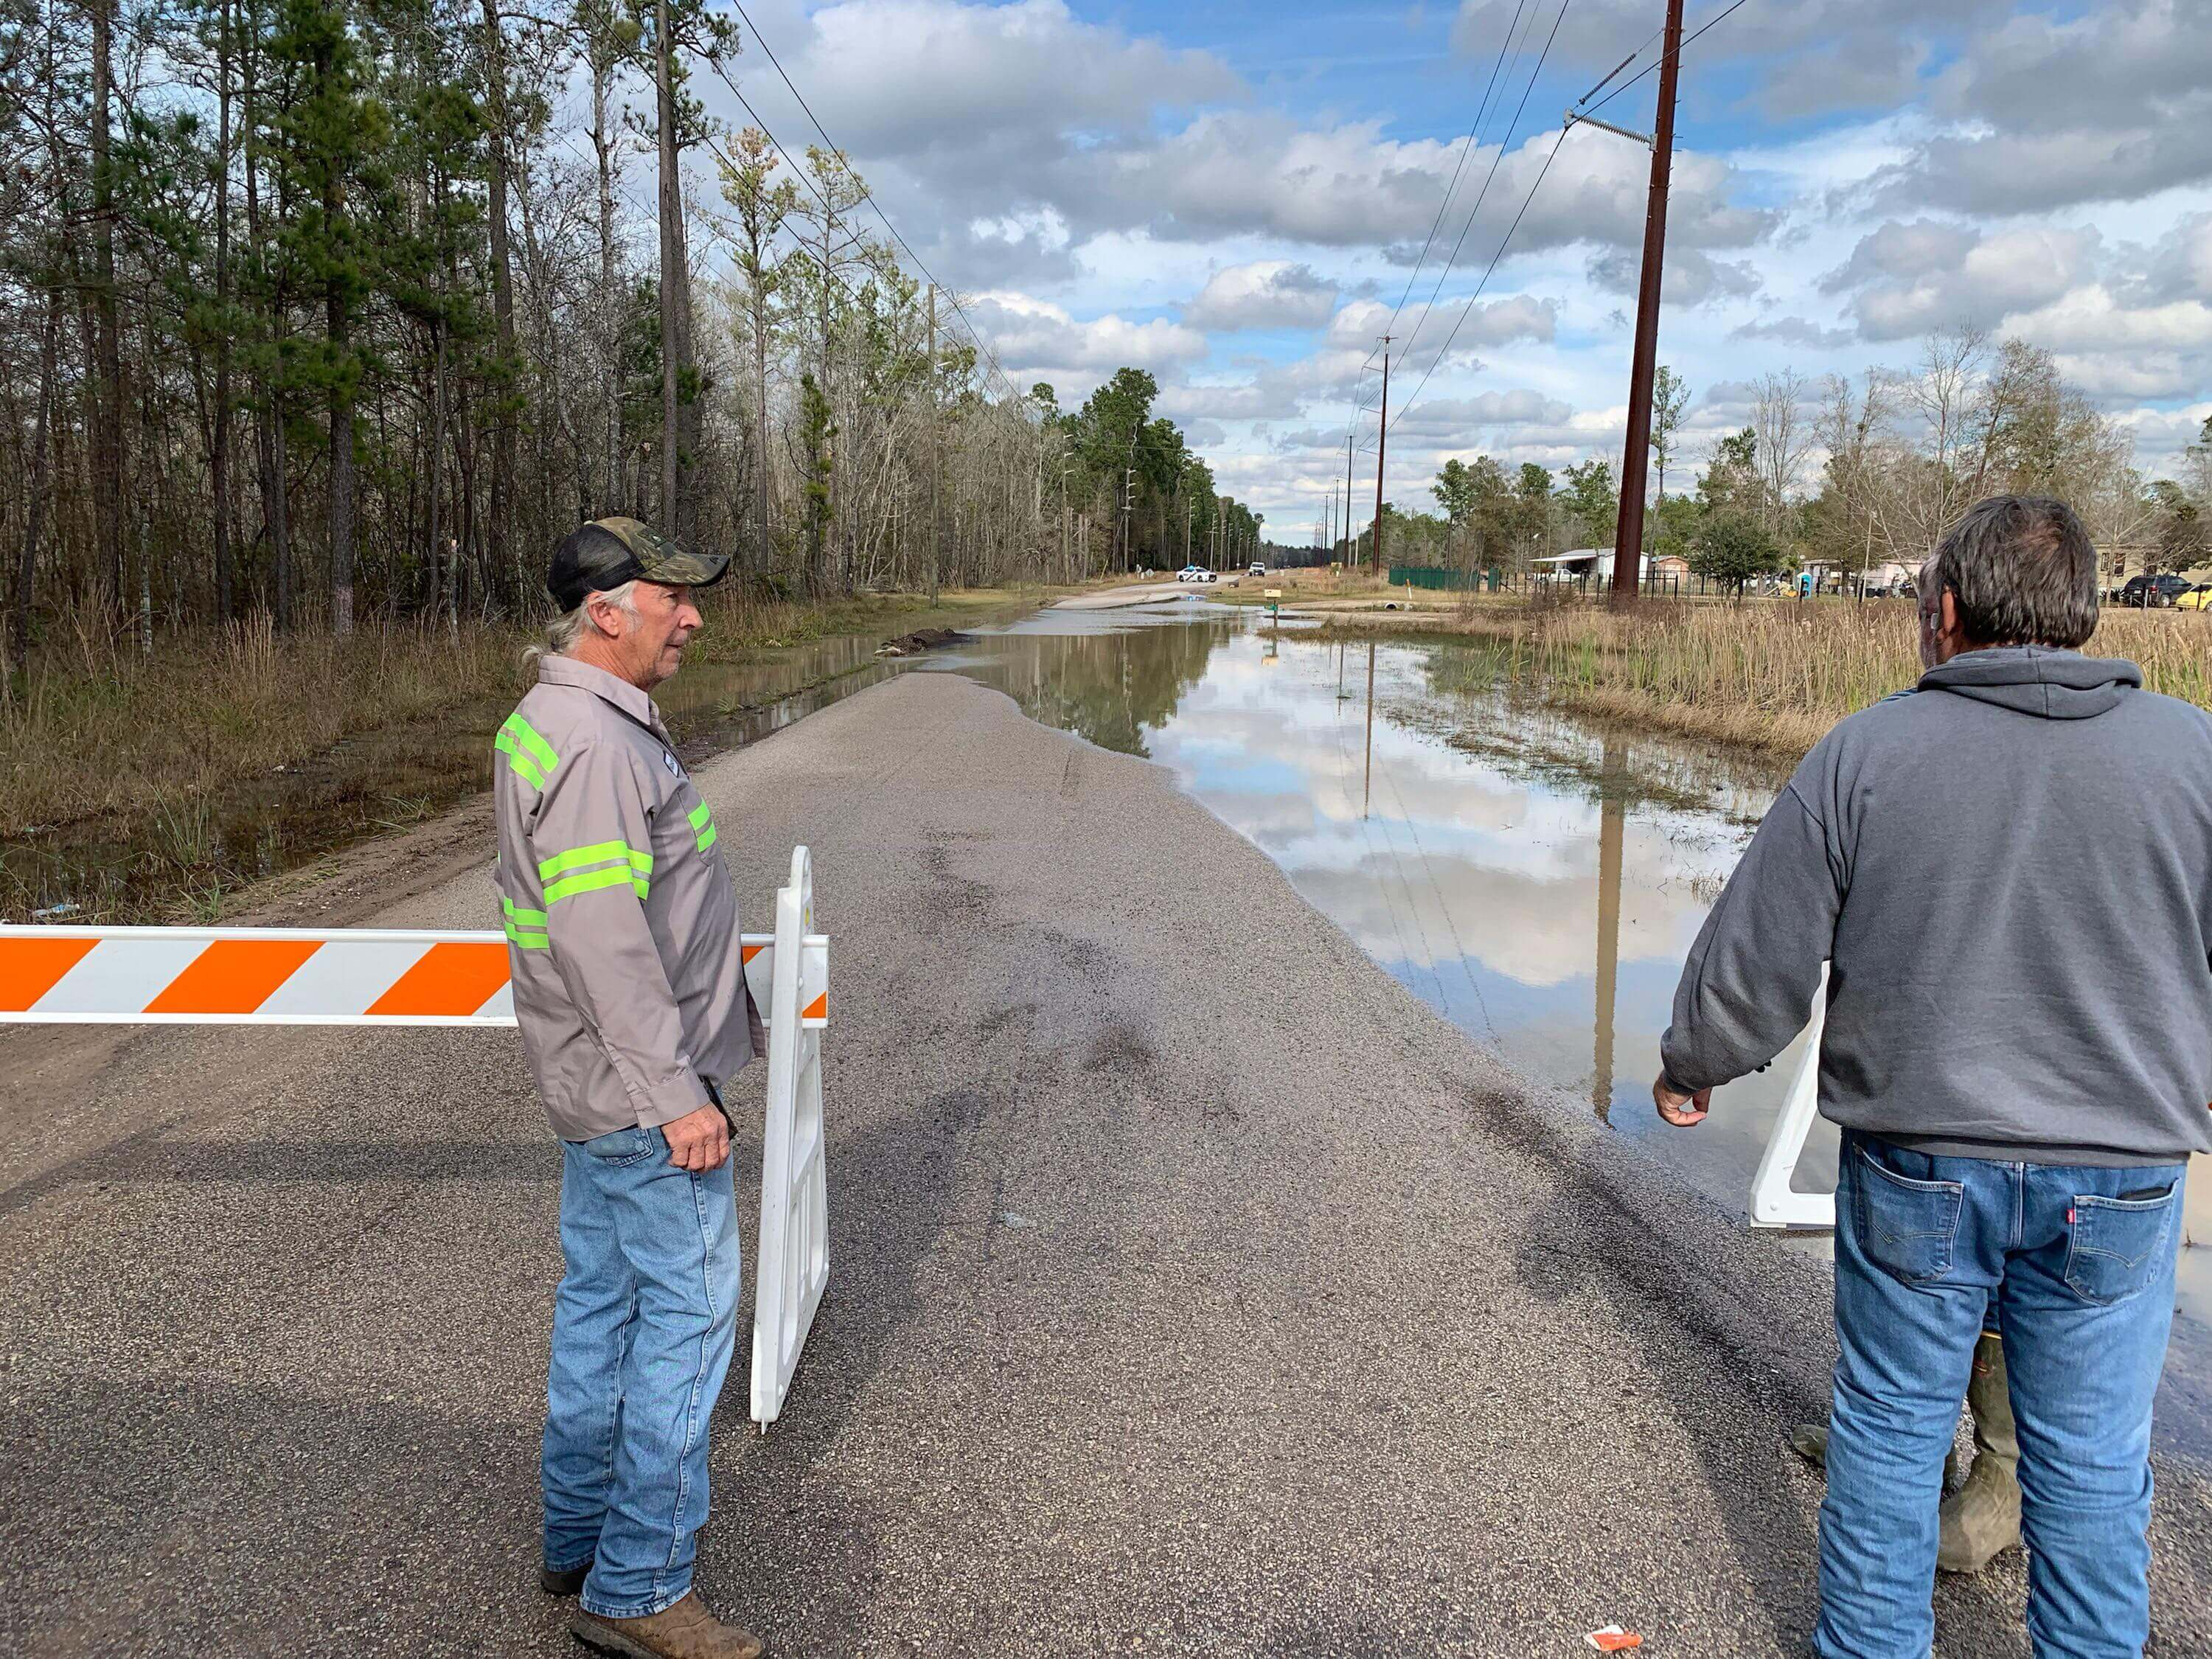 OLD HOUSTON ROAD REMAINS CLOSED  - UPDATE